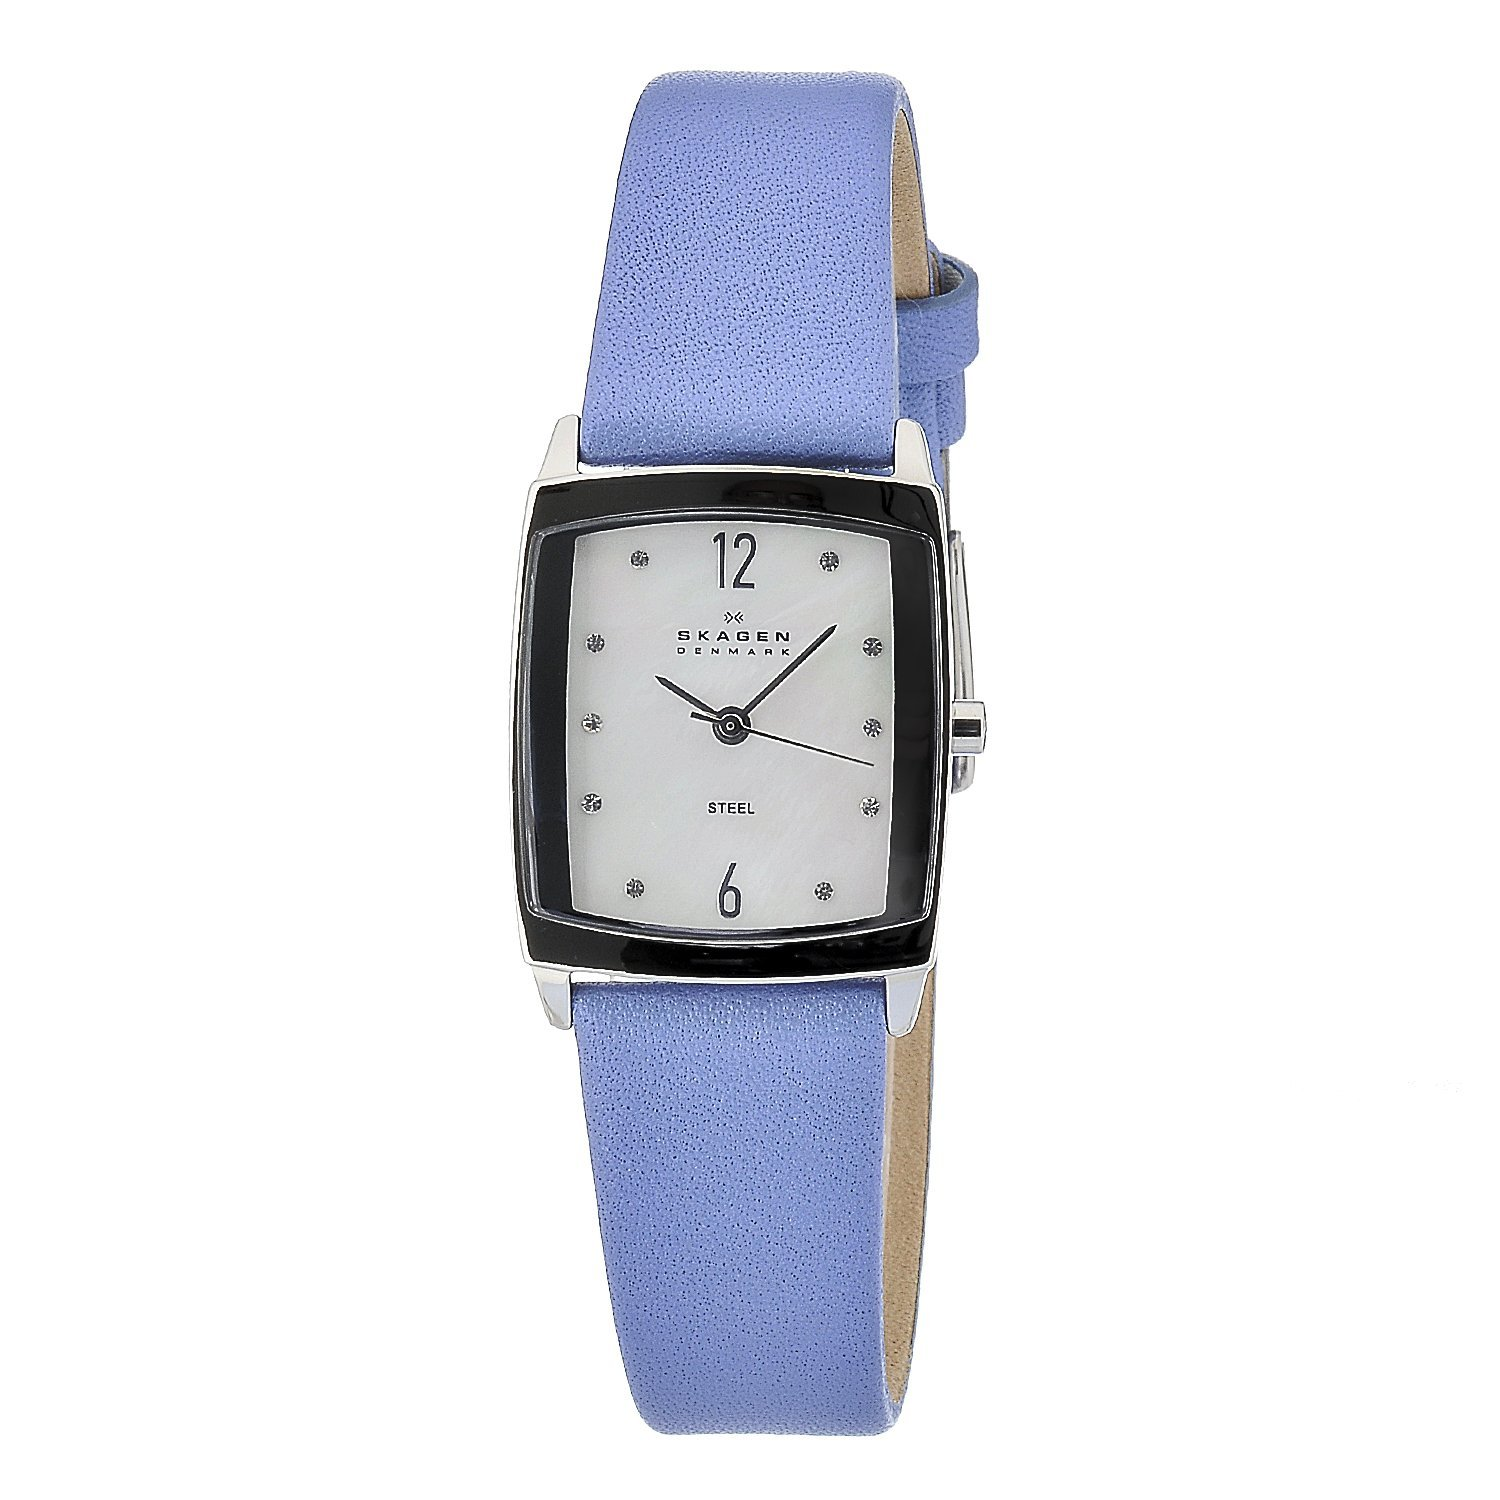 3de74dc63 Shop Skagen Women's Rectangular Leather Strap Watch - Free Shipping Today -  Overstock - 6706367